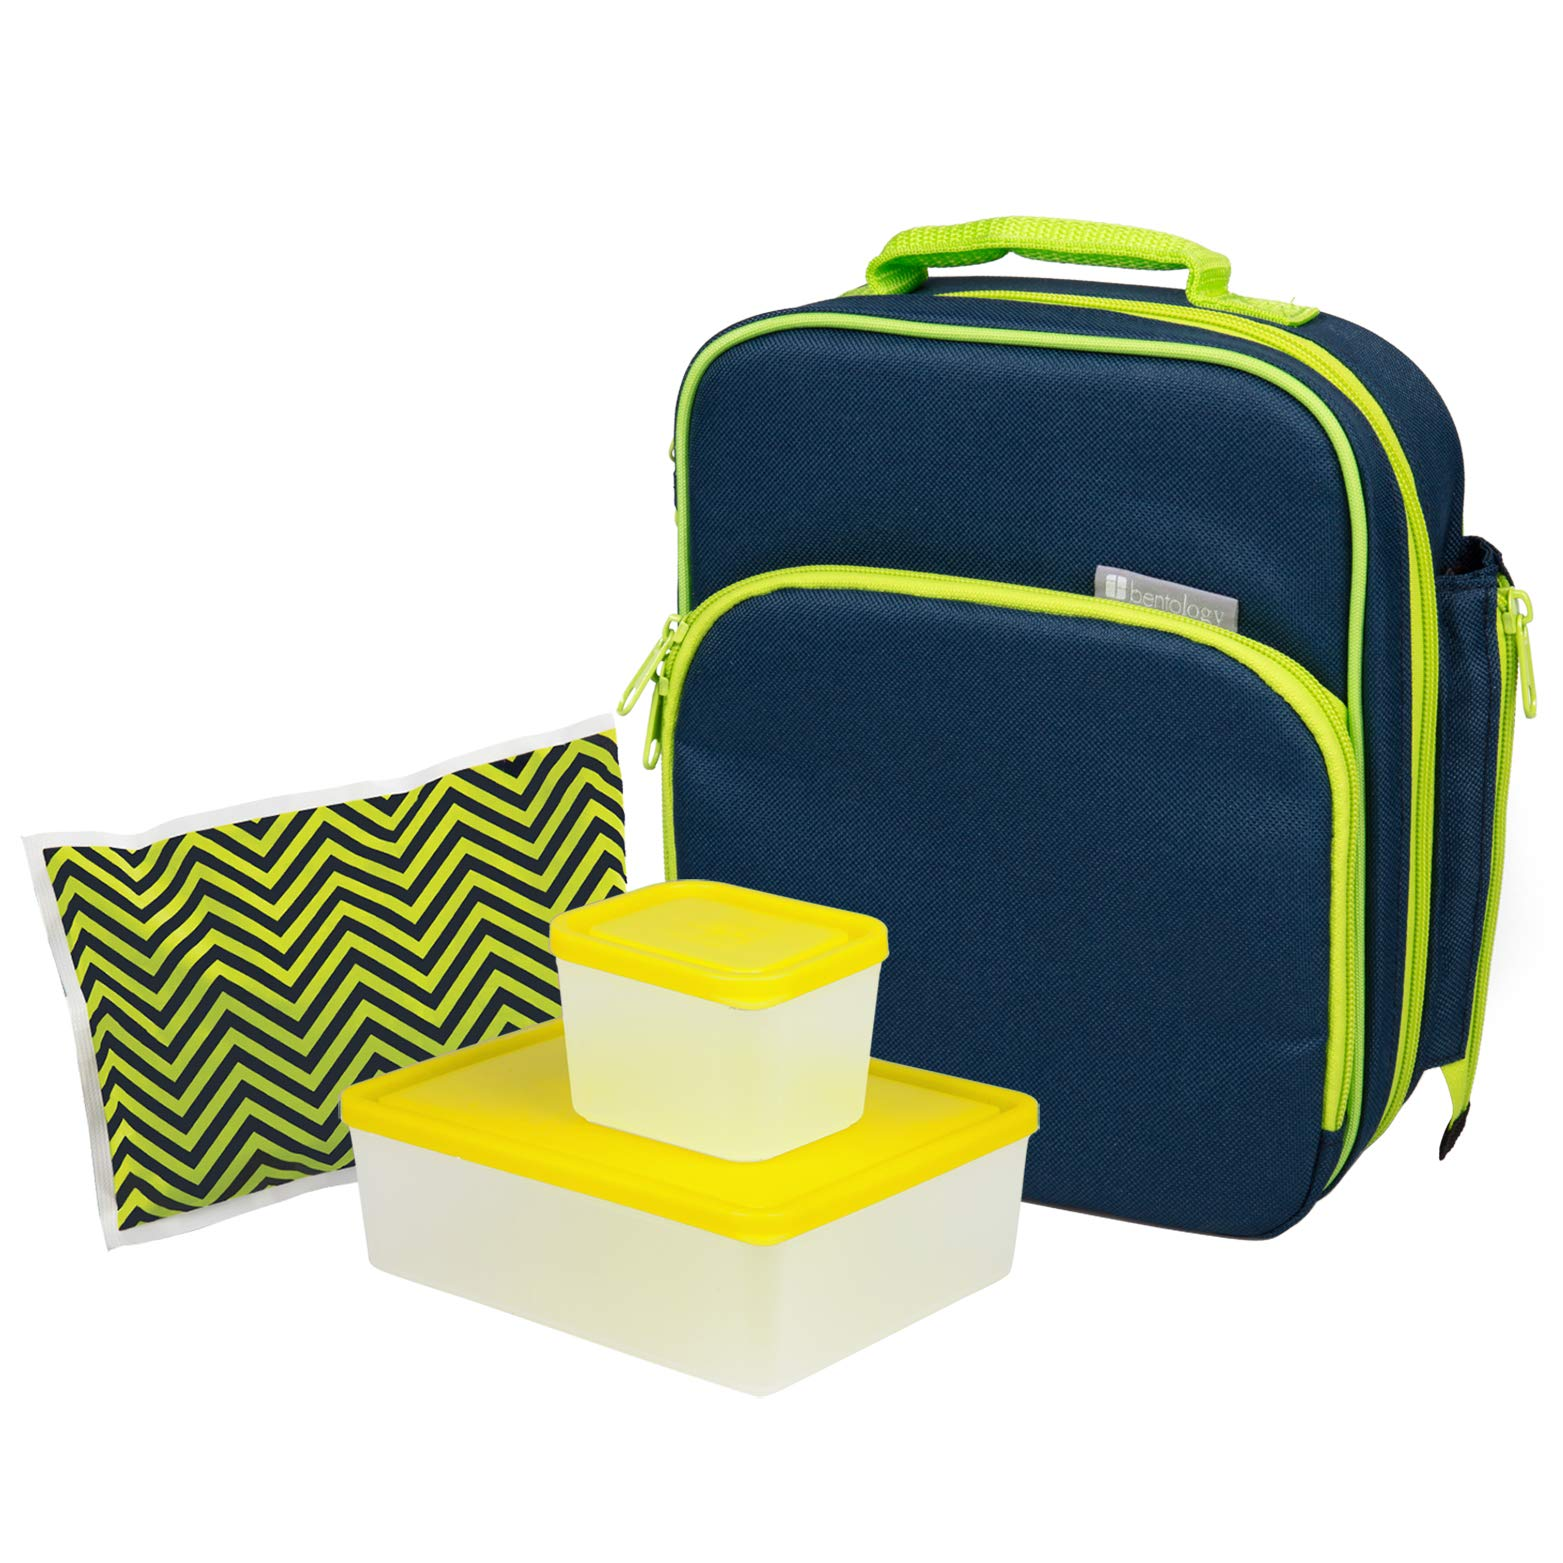 Bentology Lunch Bag and Box Set - Includes Insulated Bag with Handle, Bento Box, 5 Containers and Ice Pack (Night 2 Containers)